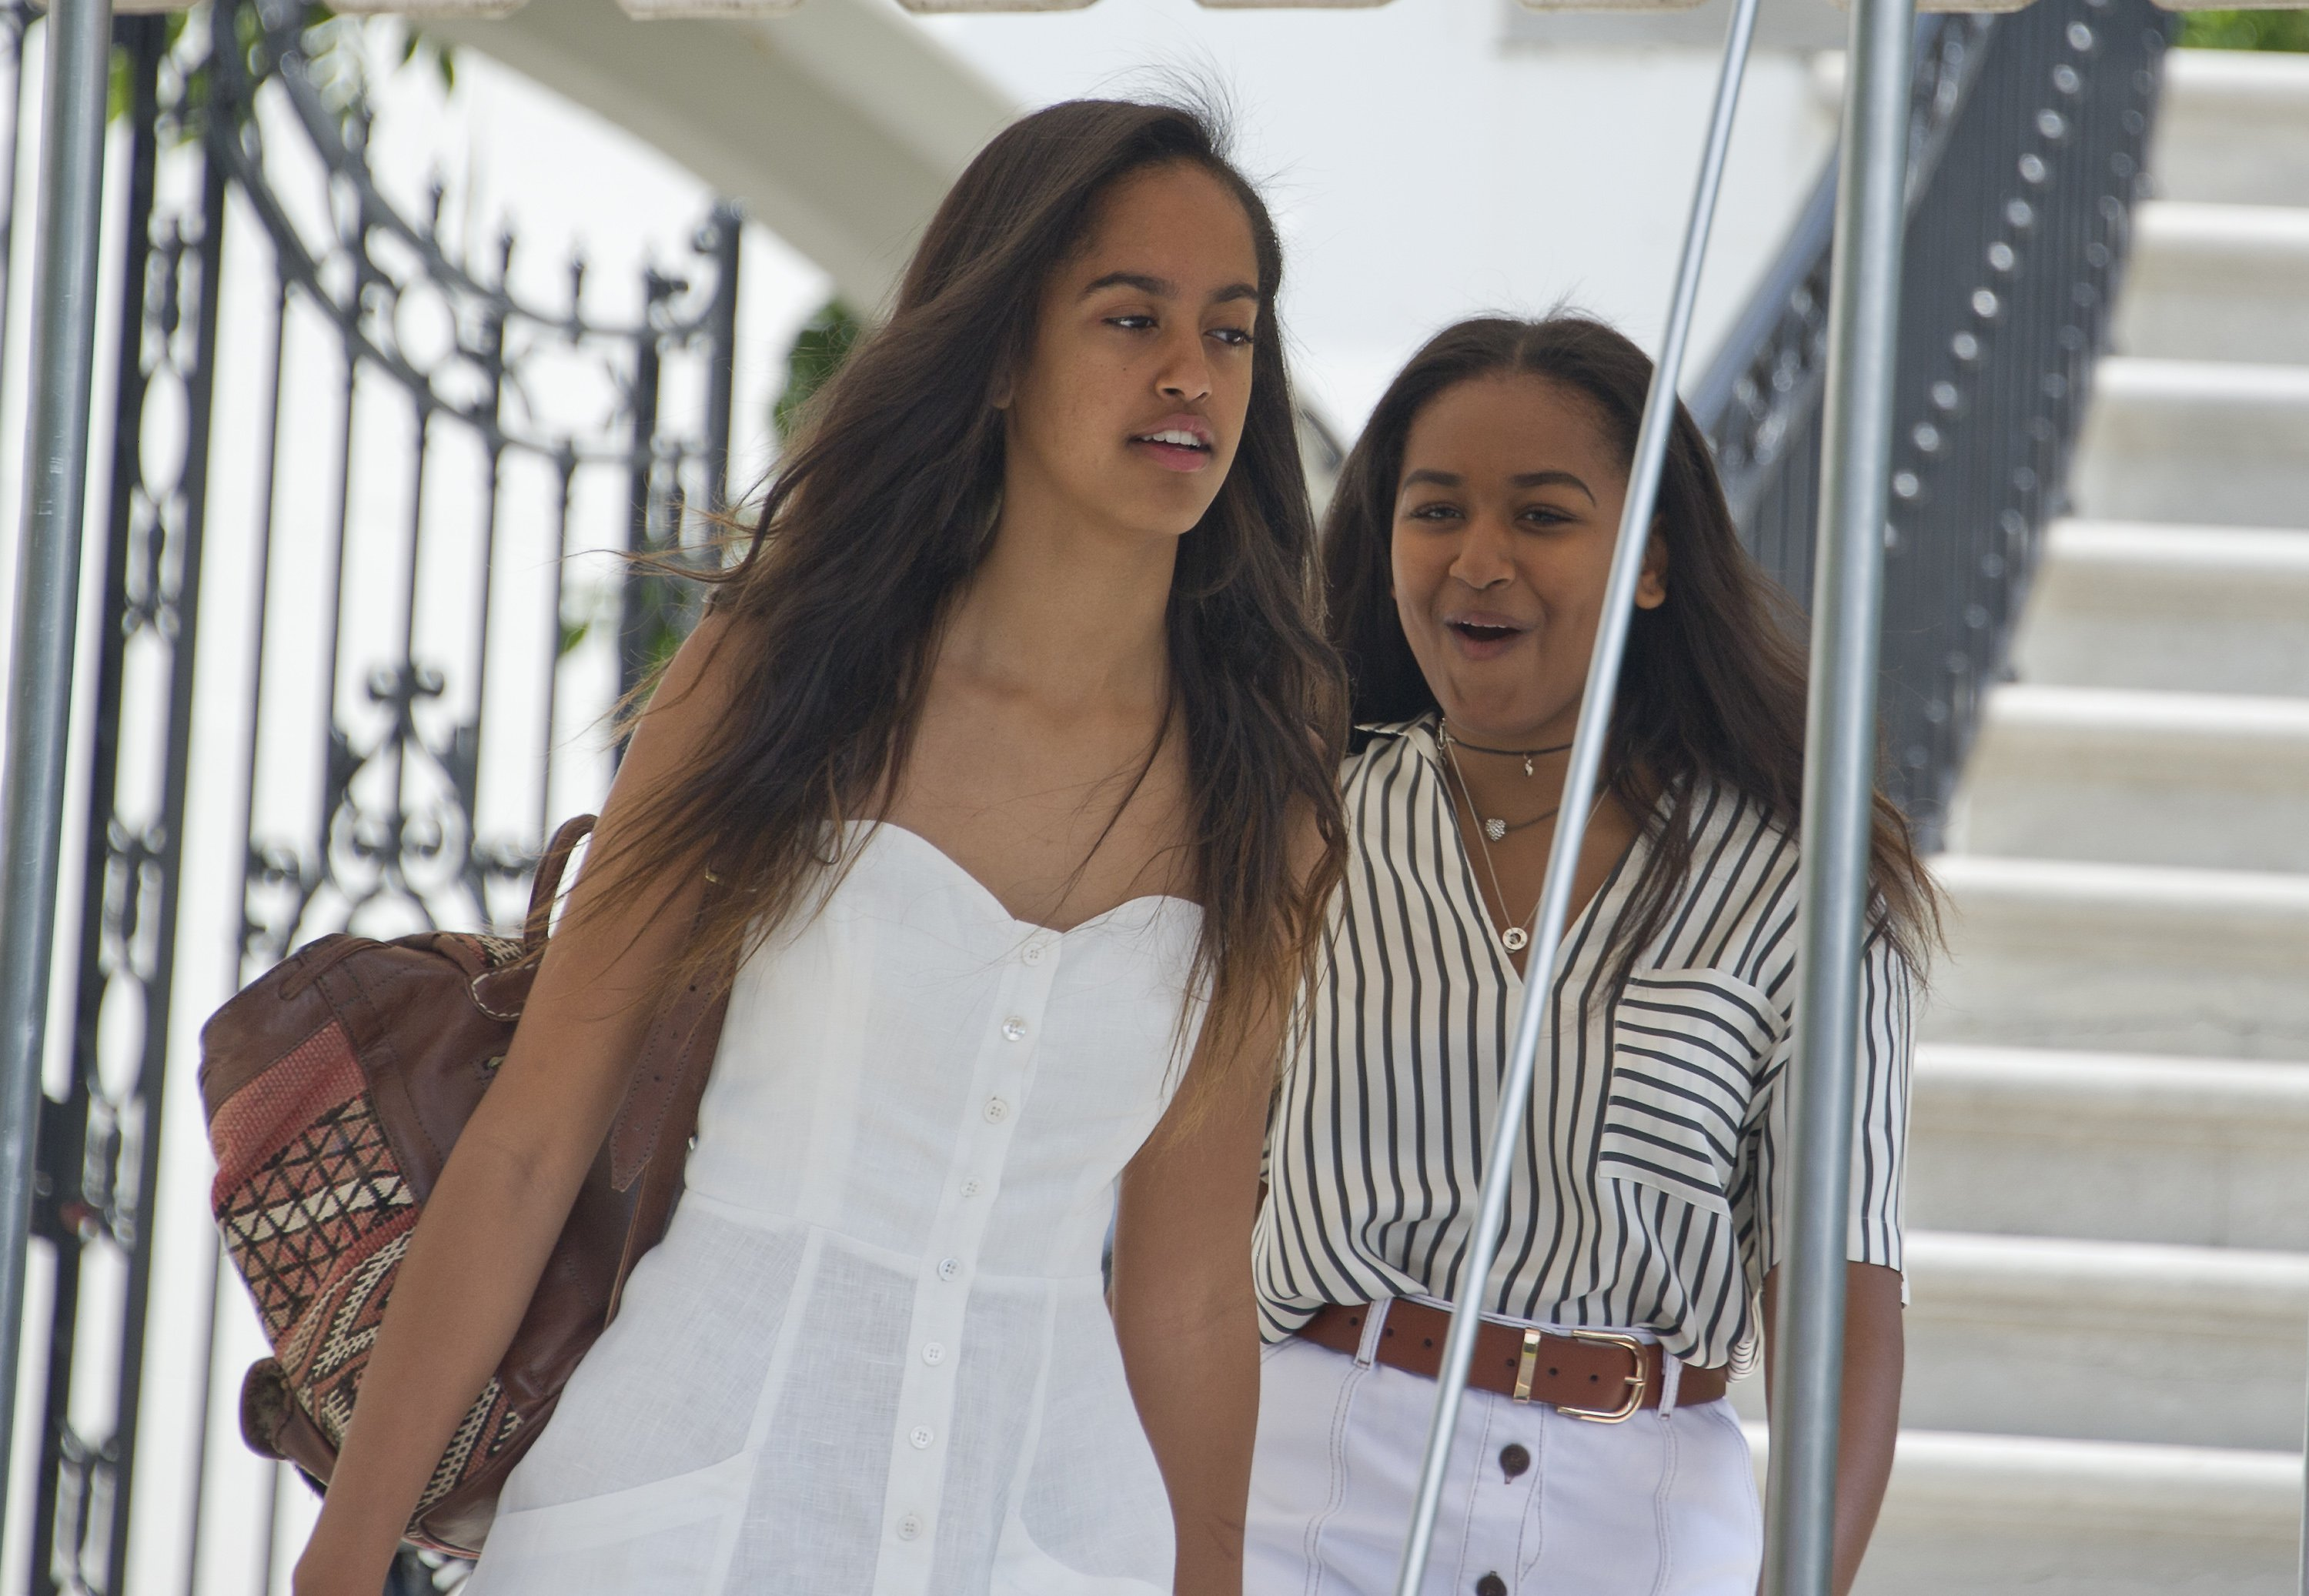 Malia et Sasha Obama quittent la Maison Blanche 6 août 2016 |  Photo : Getty Images